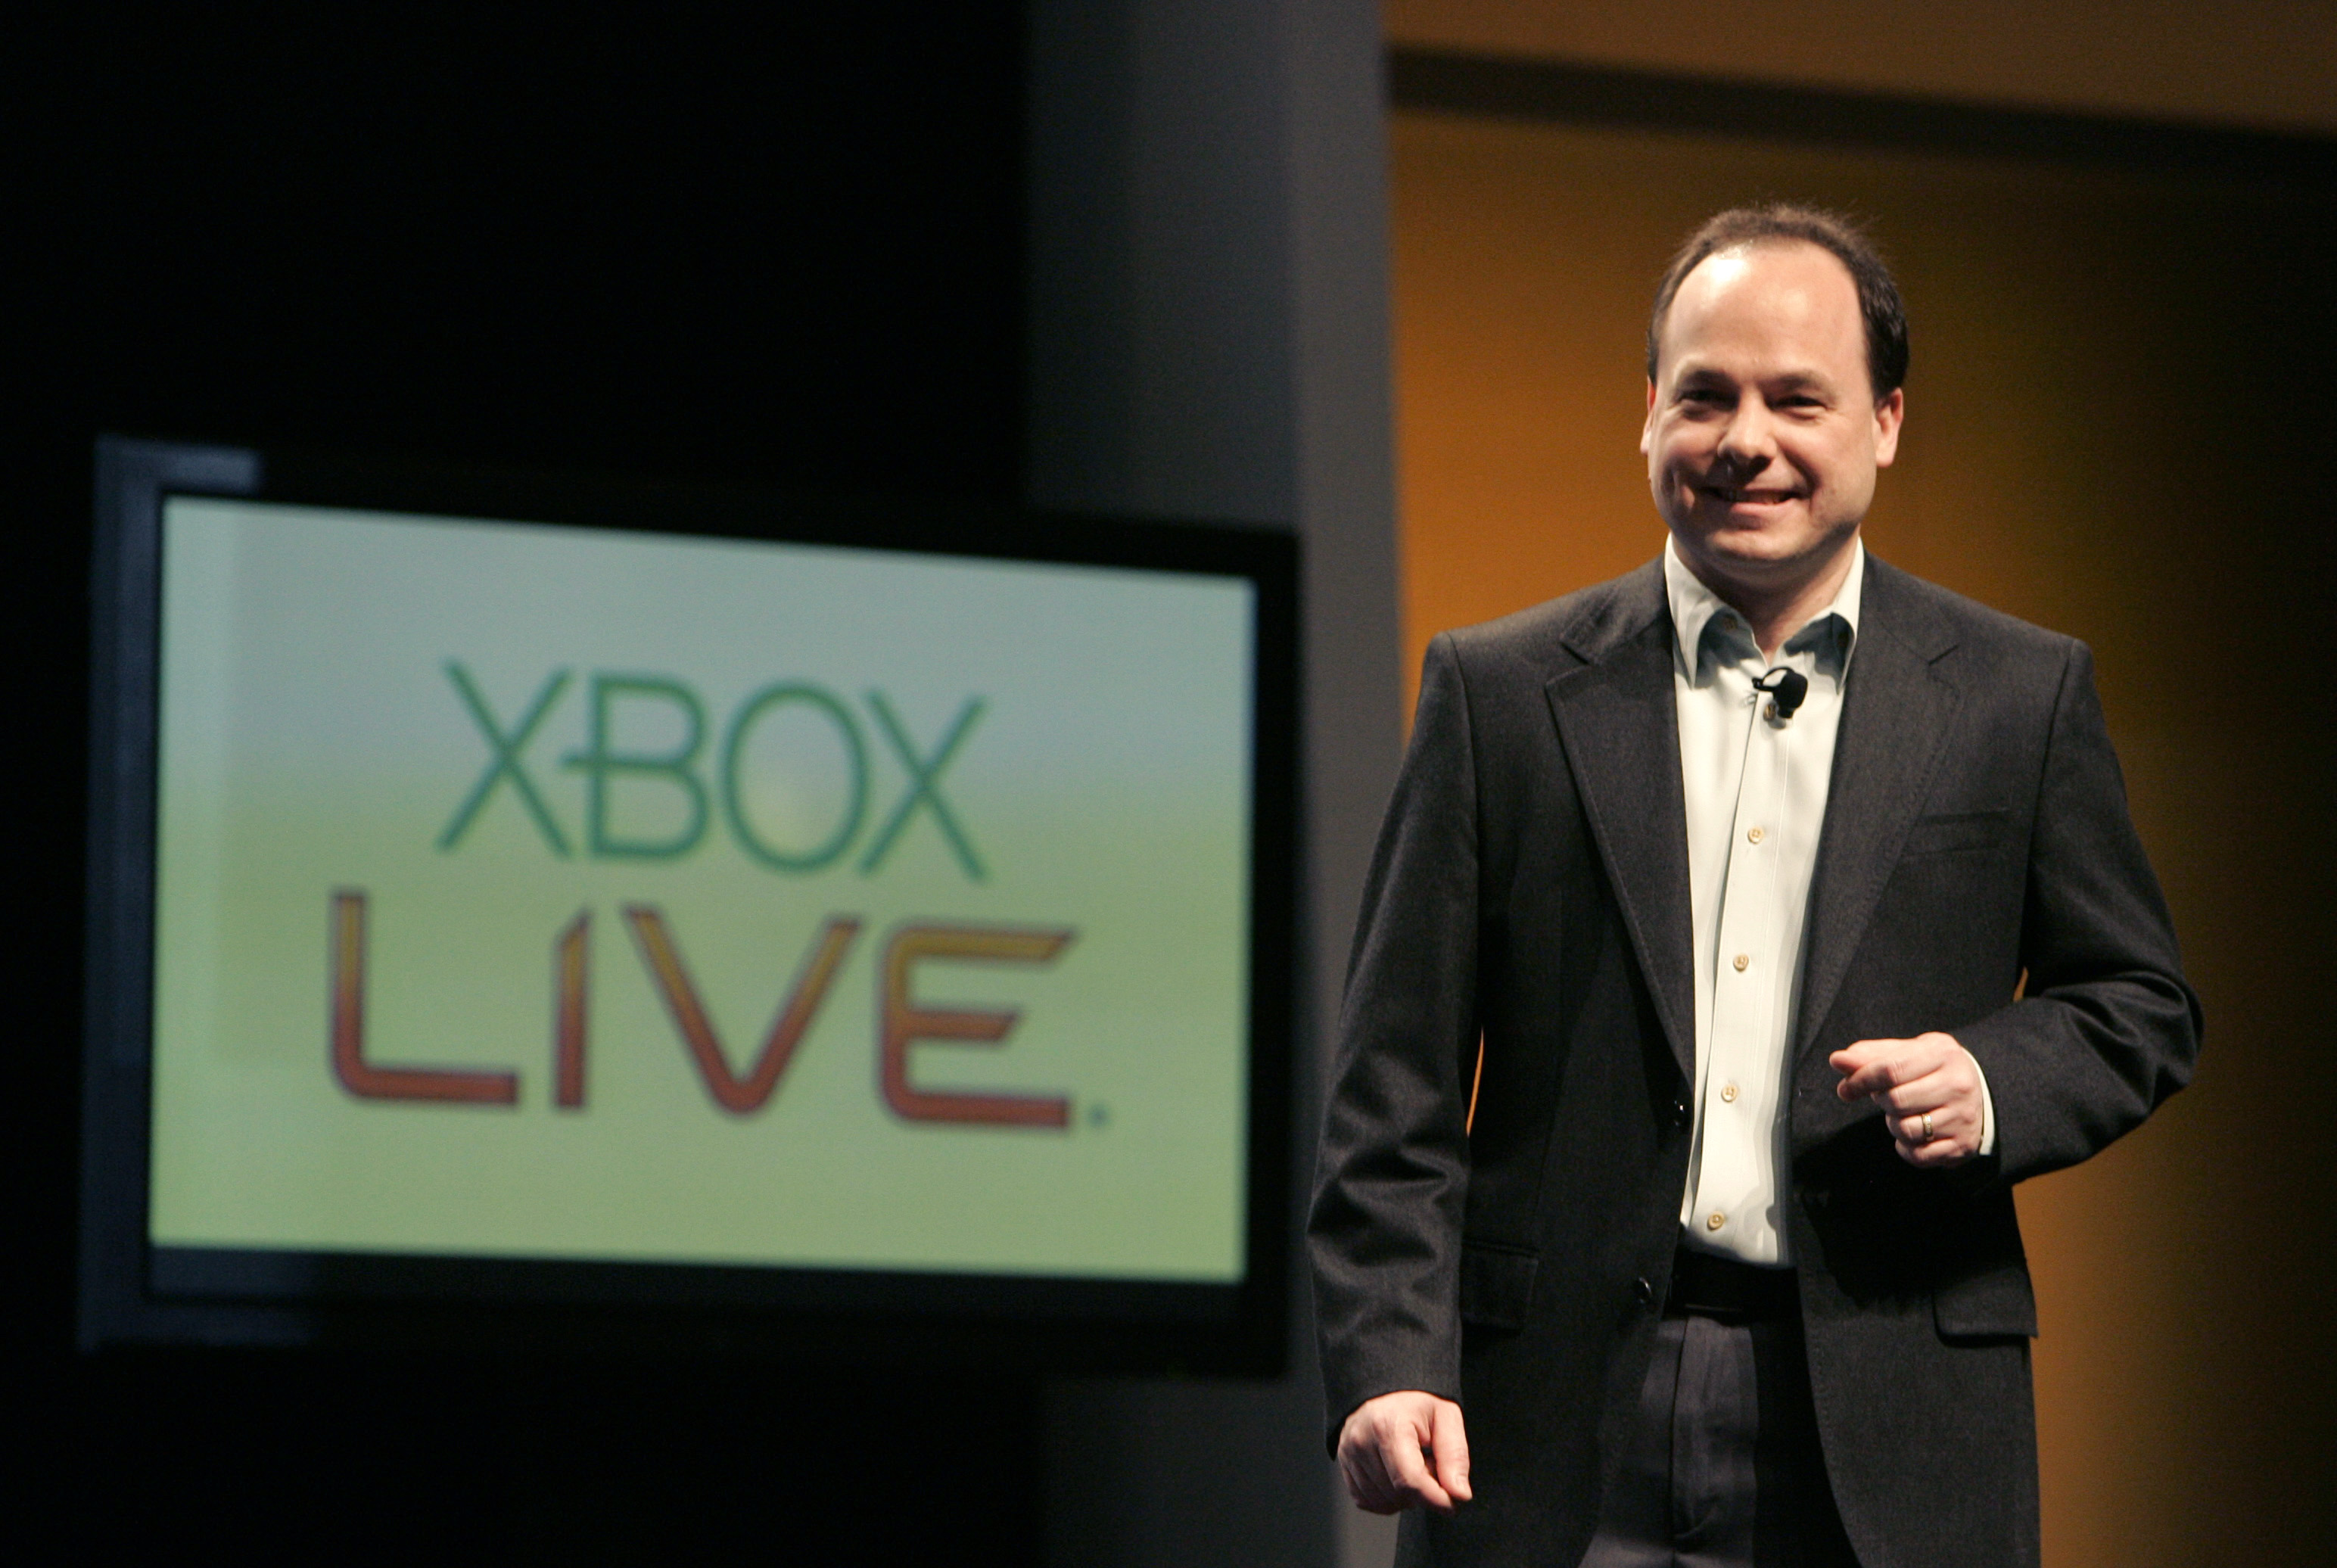 Microsoft XBox Live executive John Schappert gives his keynote address at the Game Developers Conference in San Francisco, California, February 20, 2008. REUTERS/Robert Galbraith (UNITED STATES)-GM1DXHSBVGAA